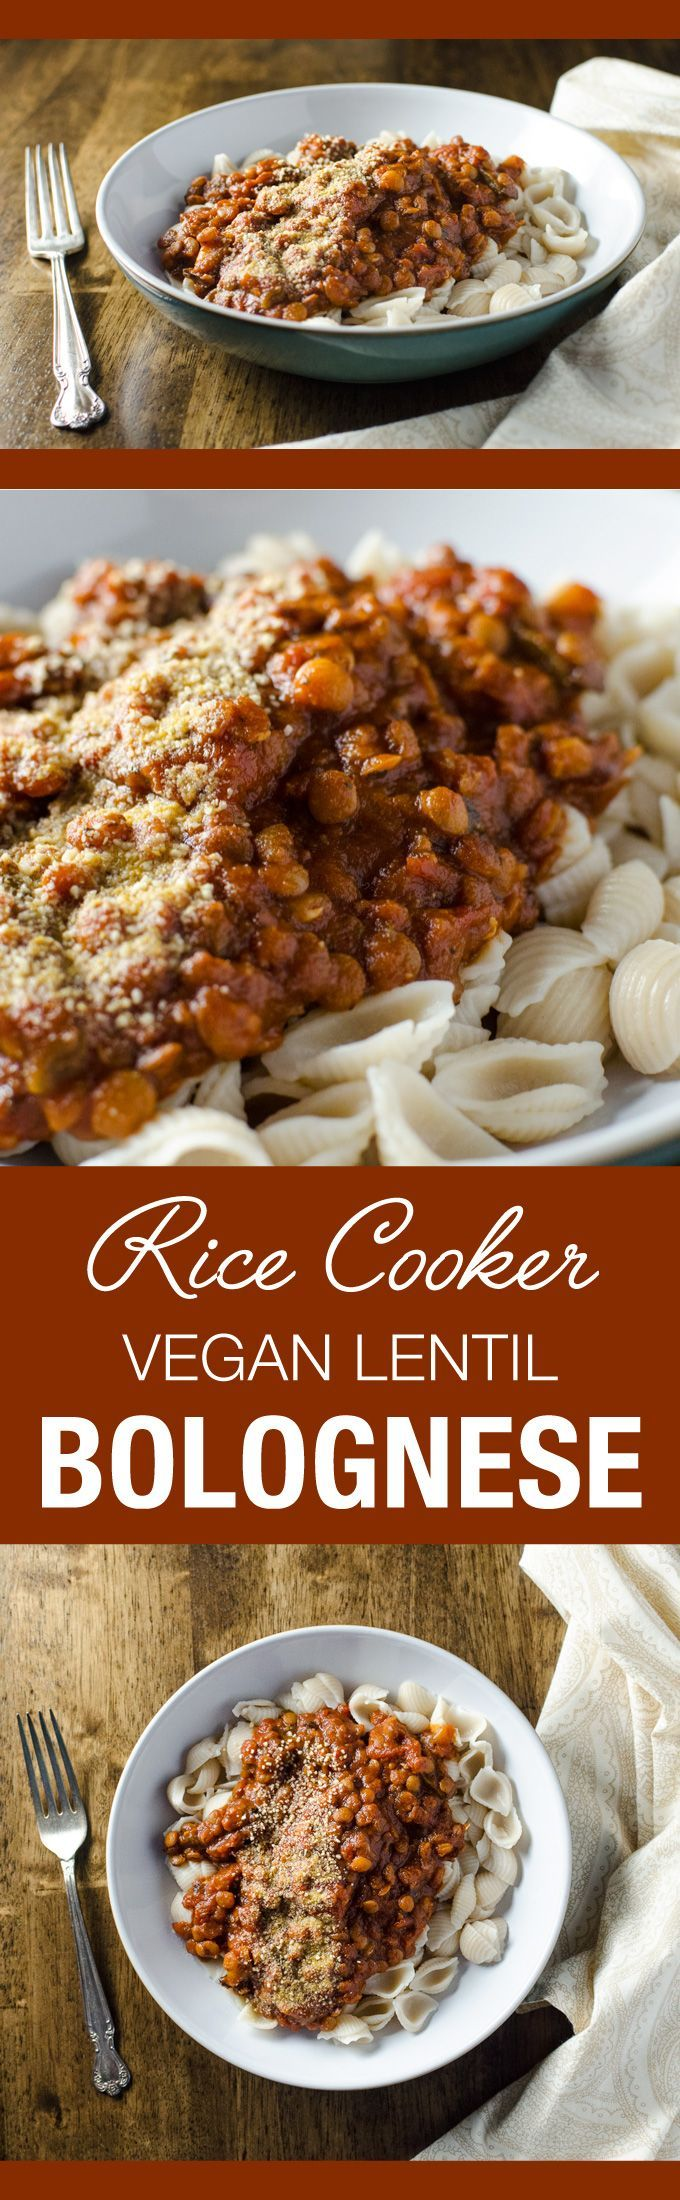 Rice Cooker Vegan Lentil Bolognese Sauce - made with simple ingredients and easy to prepare, this plant-based recipe offers a pleasing meaty texture without the meat! #vegan #ricecookermeals